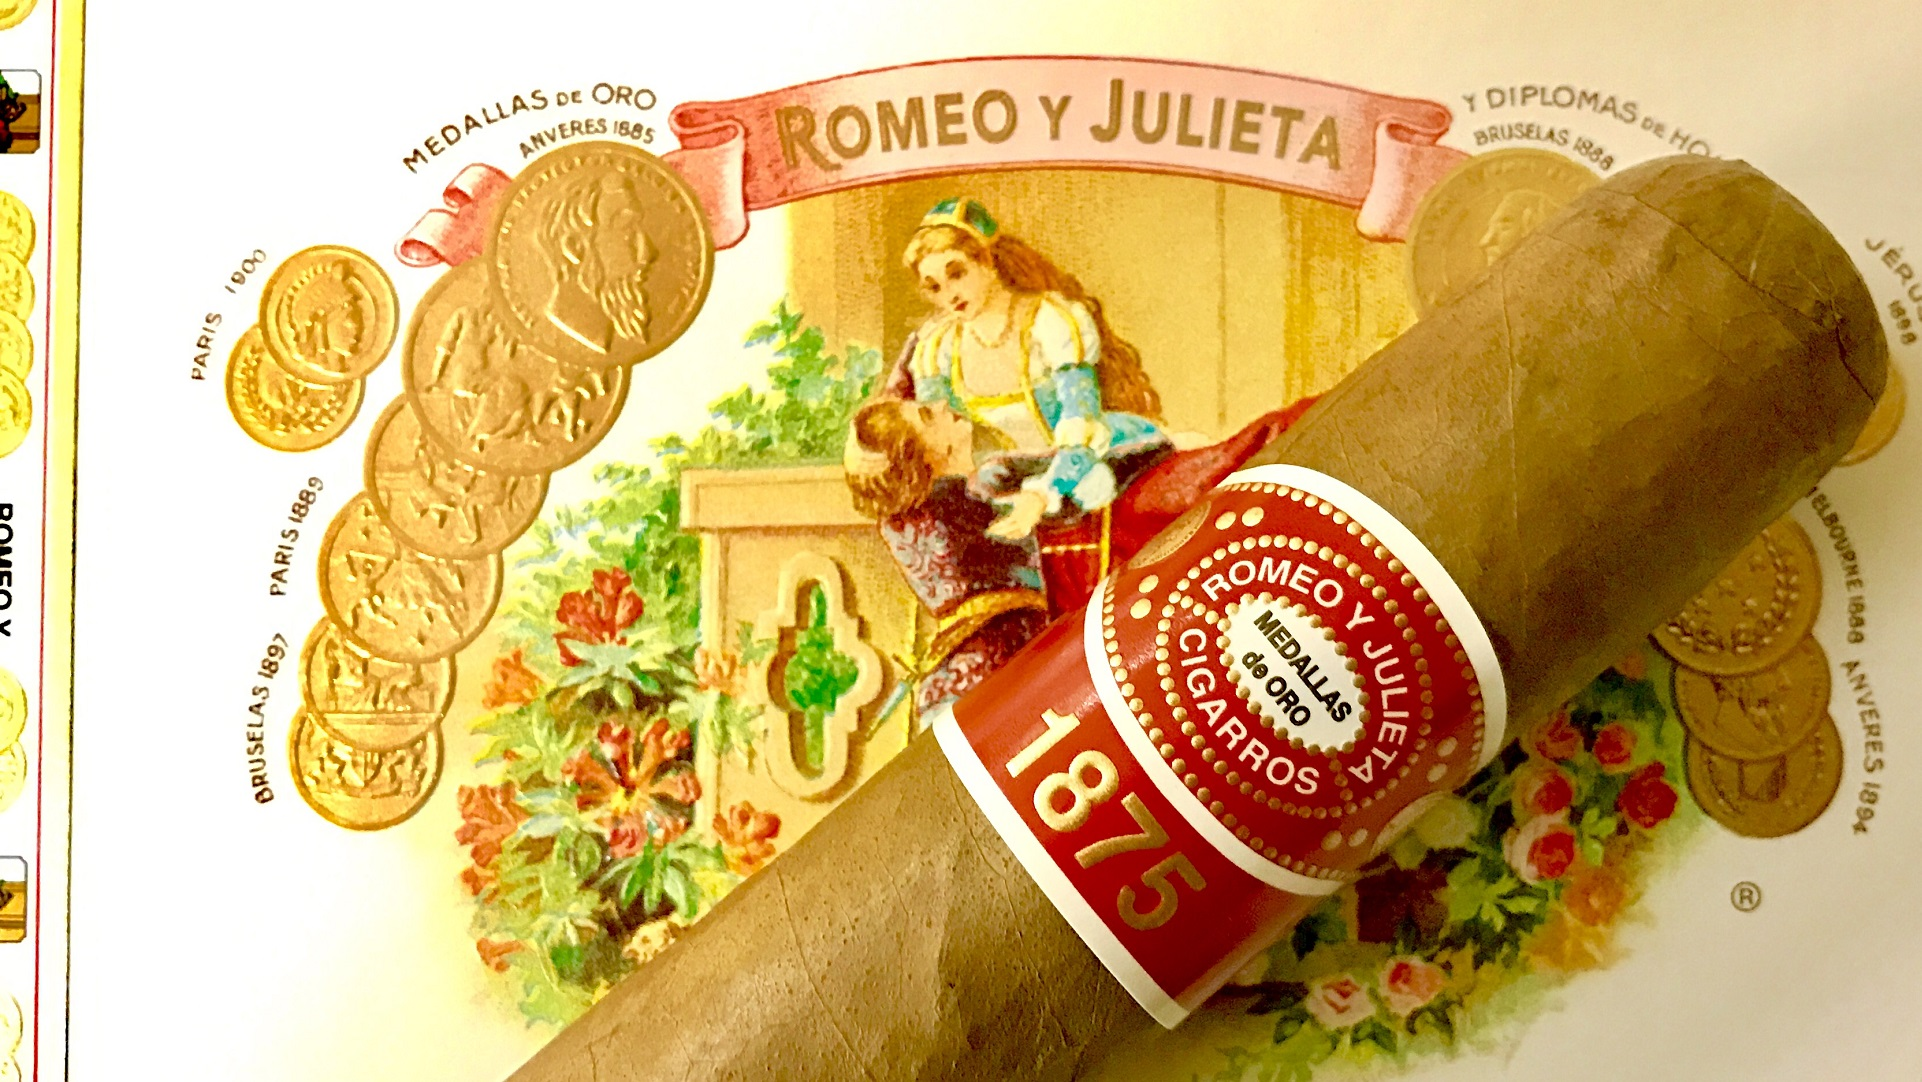 Romeo y Julieta 1875 Churchill En Tubo - Box of 10 image